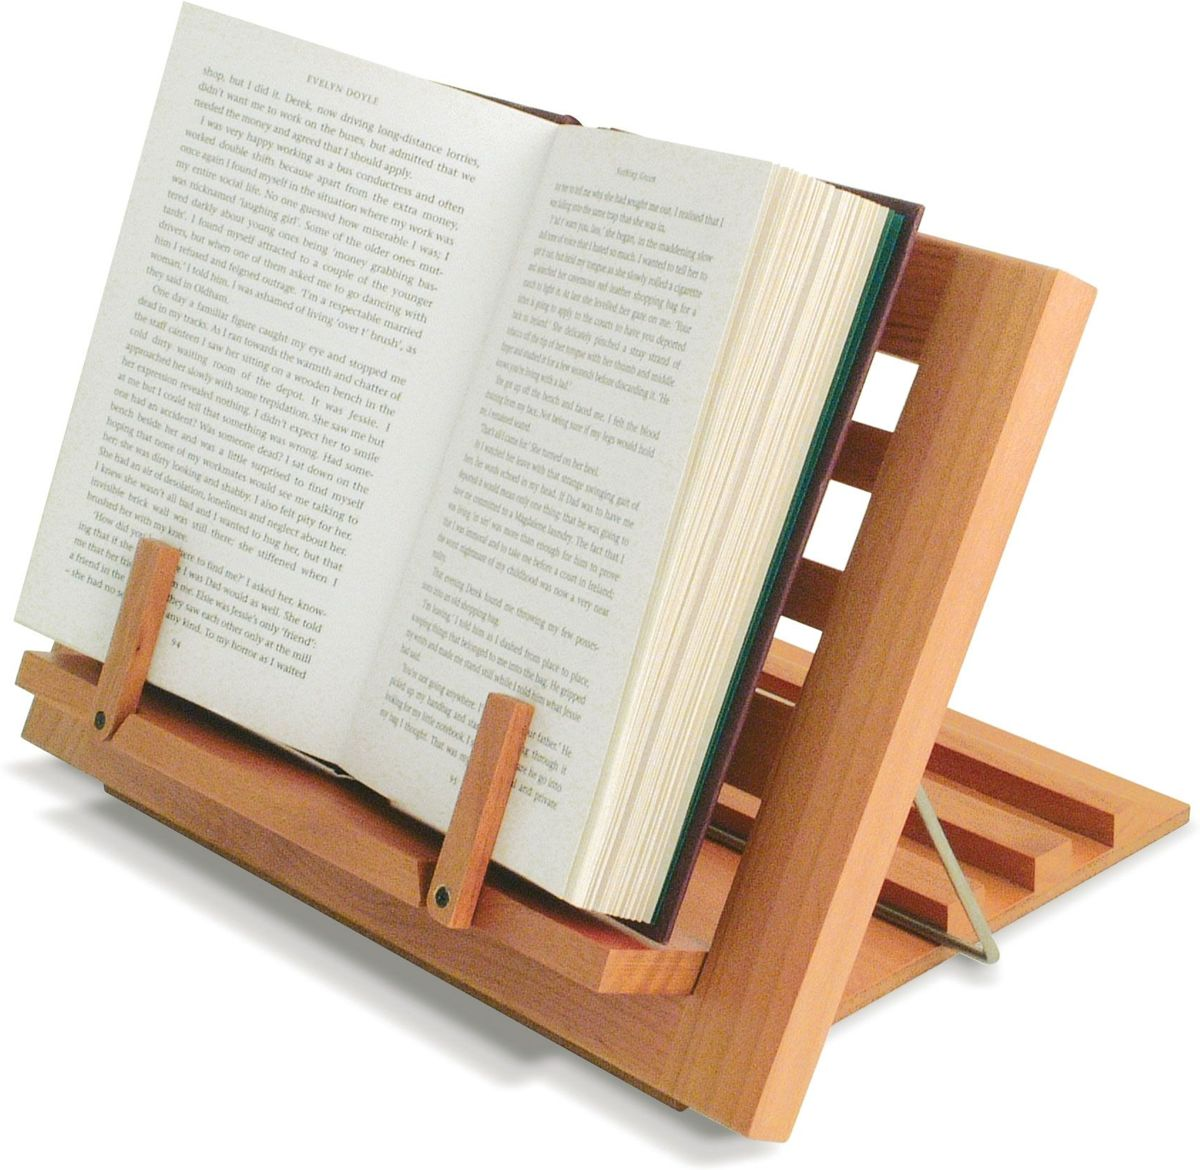 bol | wooden reading rest,beltz gmbh, julius